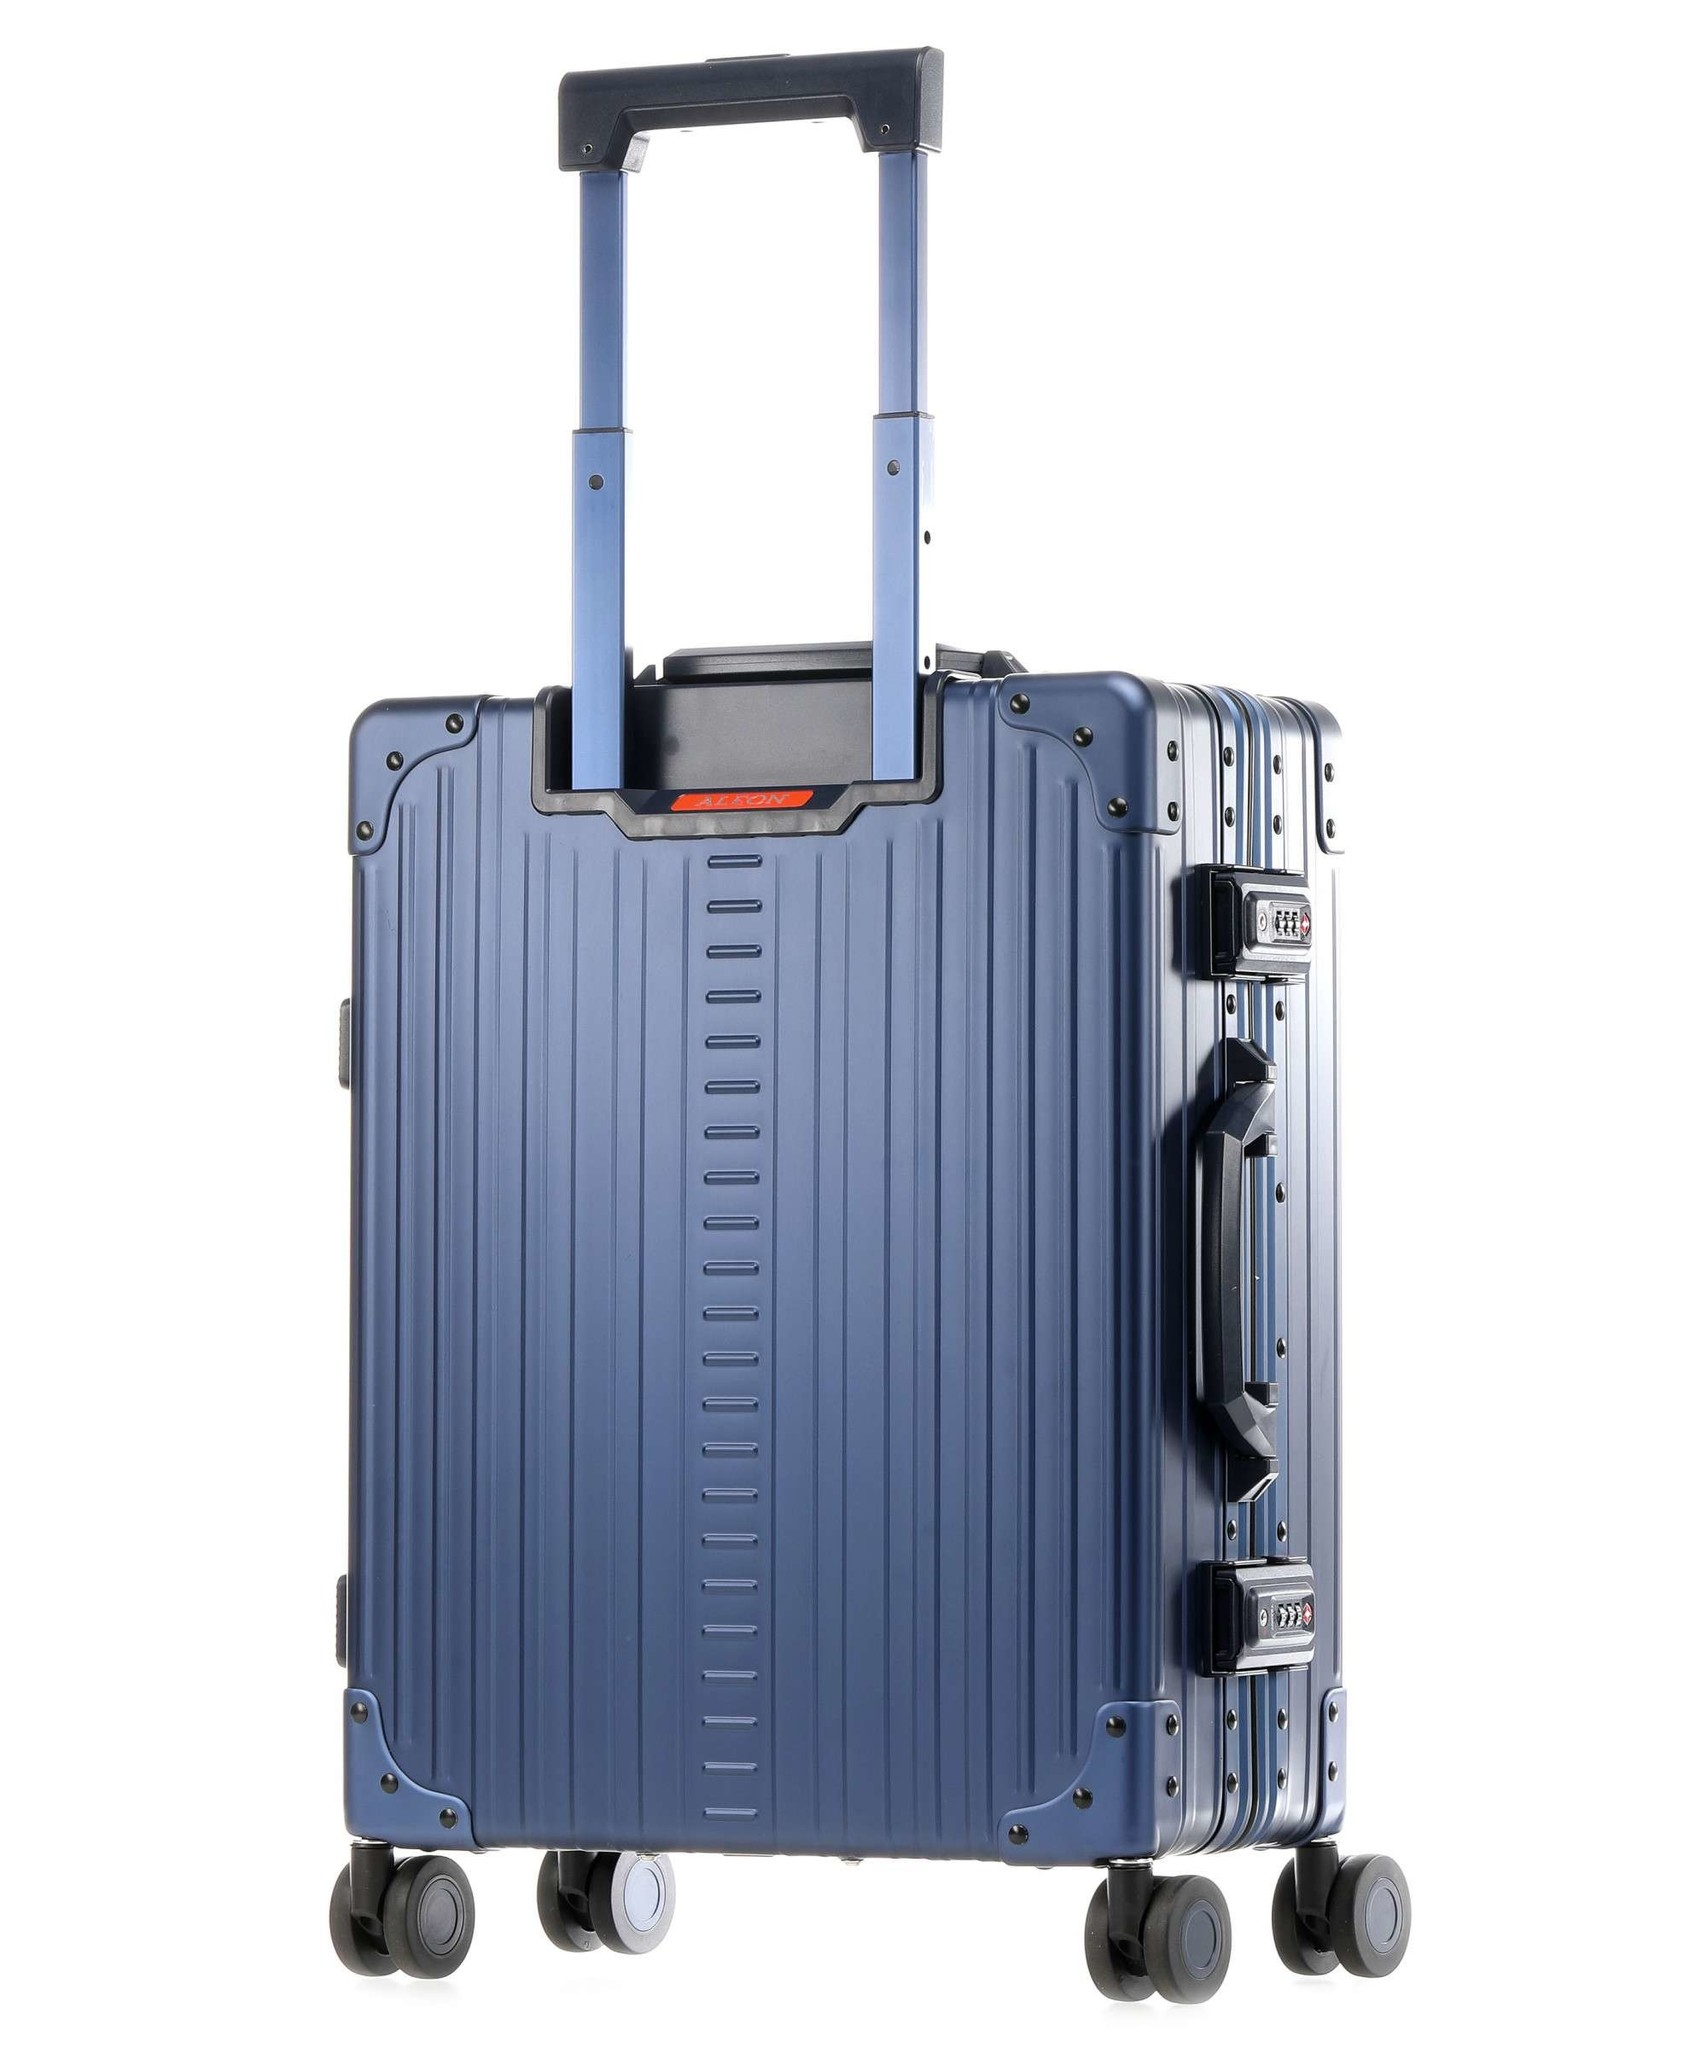 "Aleon Aleon 21"" International Carry-on - Aluminium 55 x 40 x 20 cm handbagage Reiskoffer - blauw"